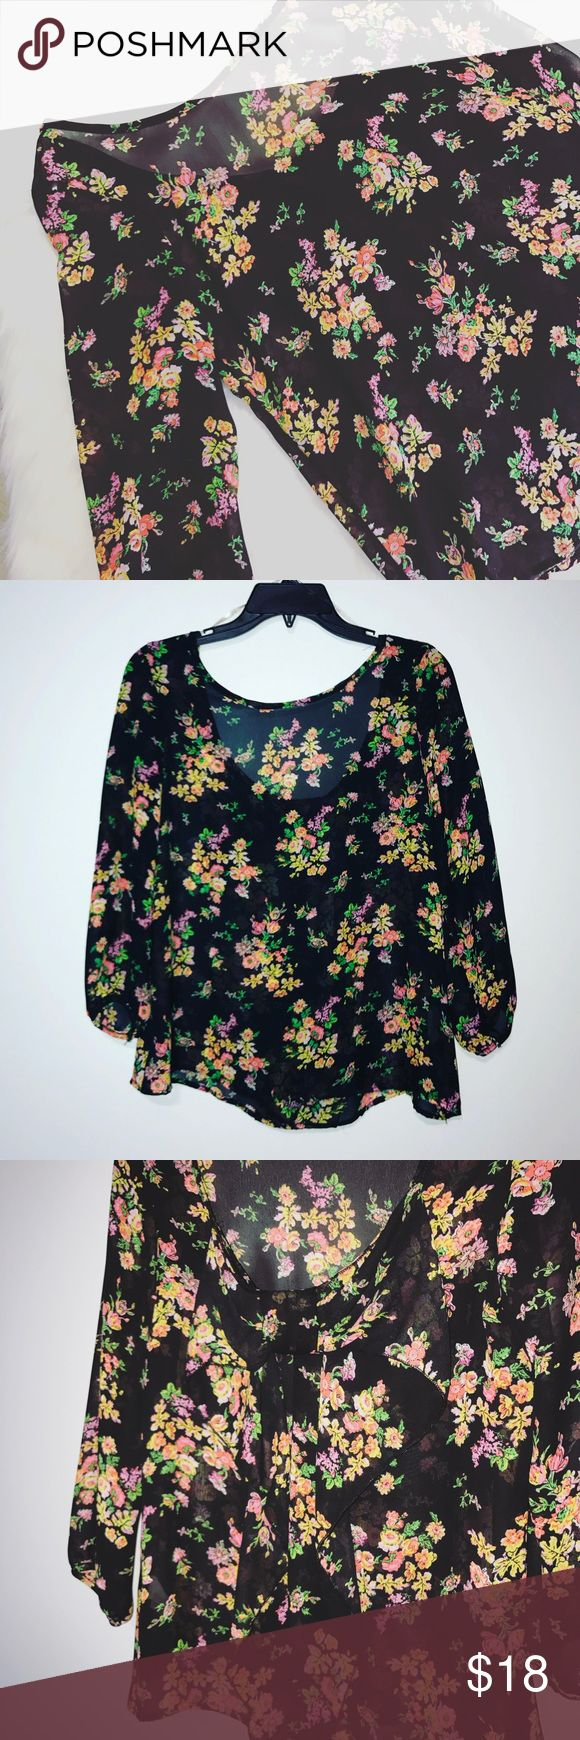 Love Culture Sheer Floral Top Super cute flowy Floral Top from Love Culture clothing. Adorable bow on back that's blended in! In great condition! Bundle and save 20% 💕 Love Culture Tops